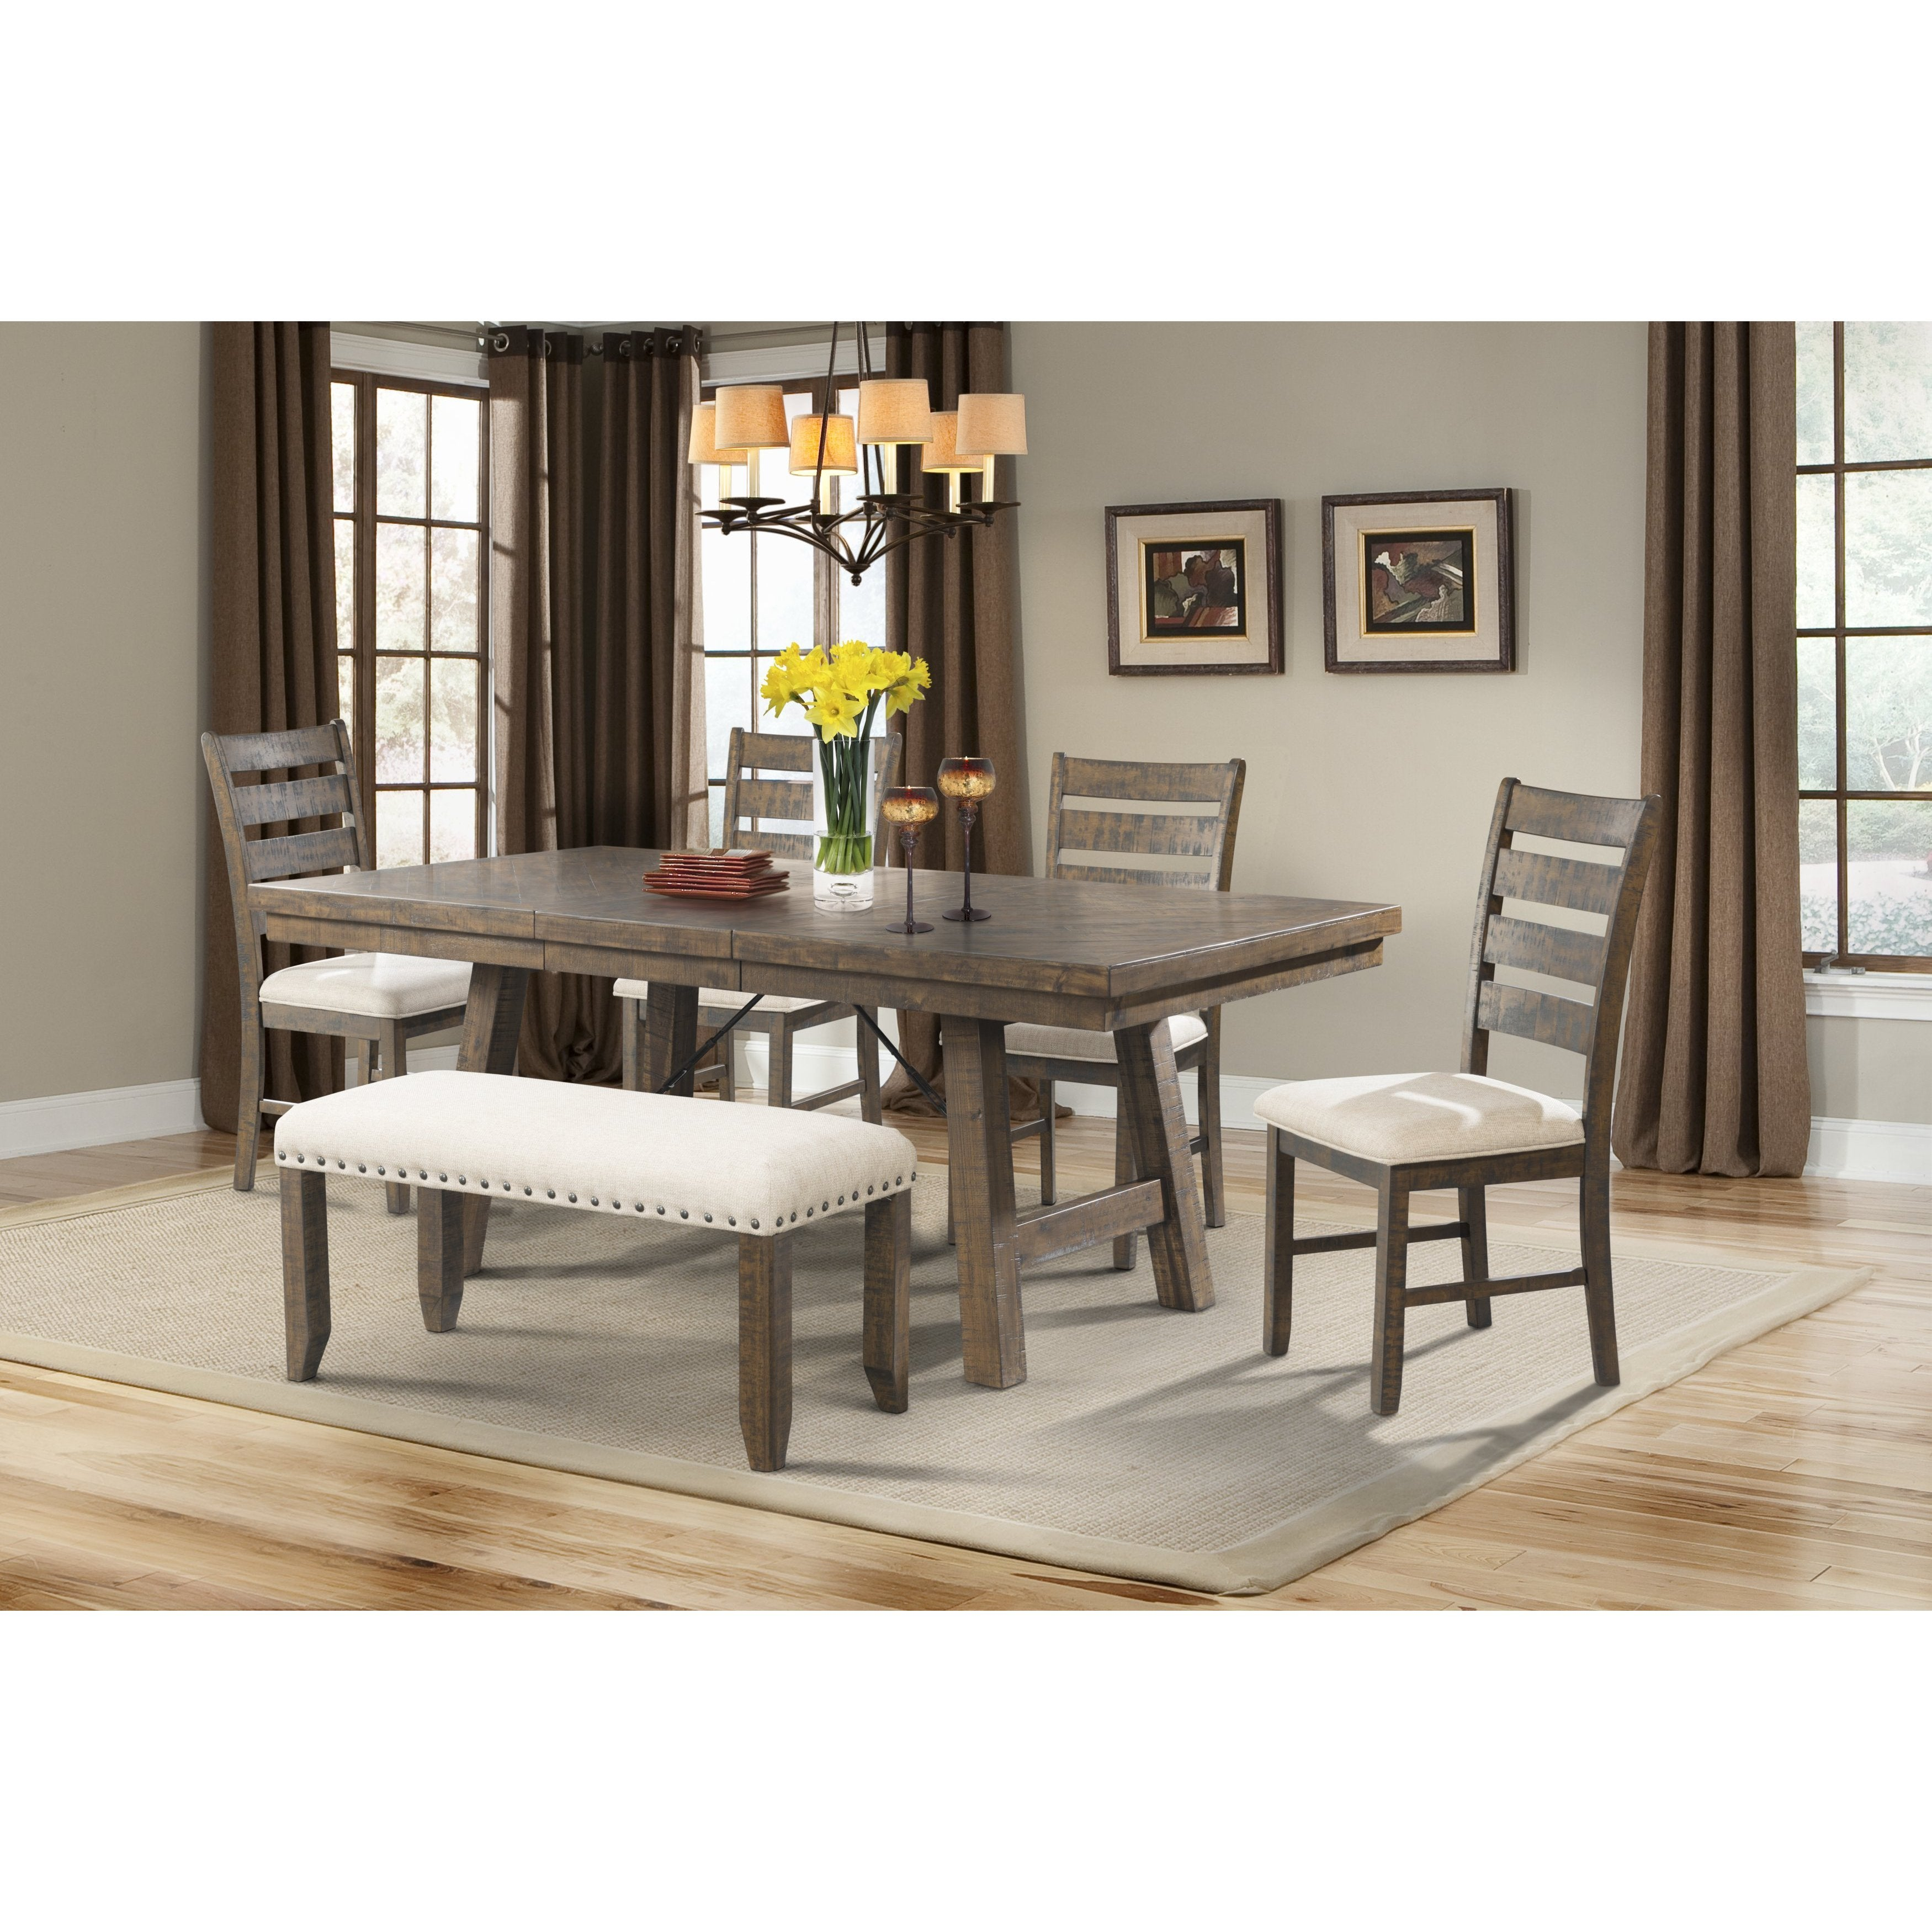 Picket House Furnishings Dex 7PC Dining Set- Table, 4 Lad...